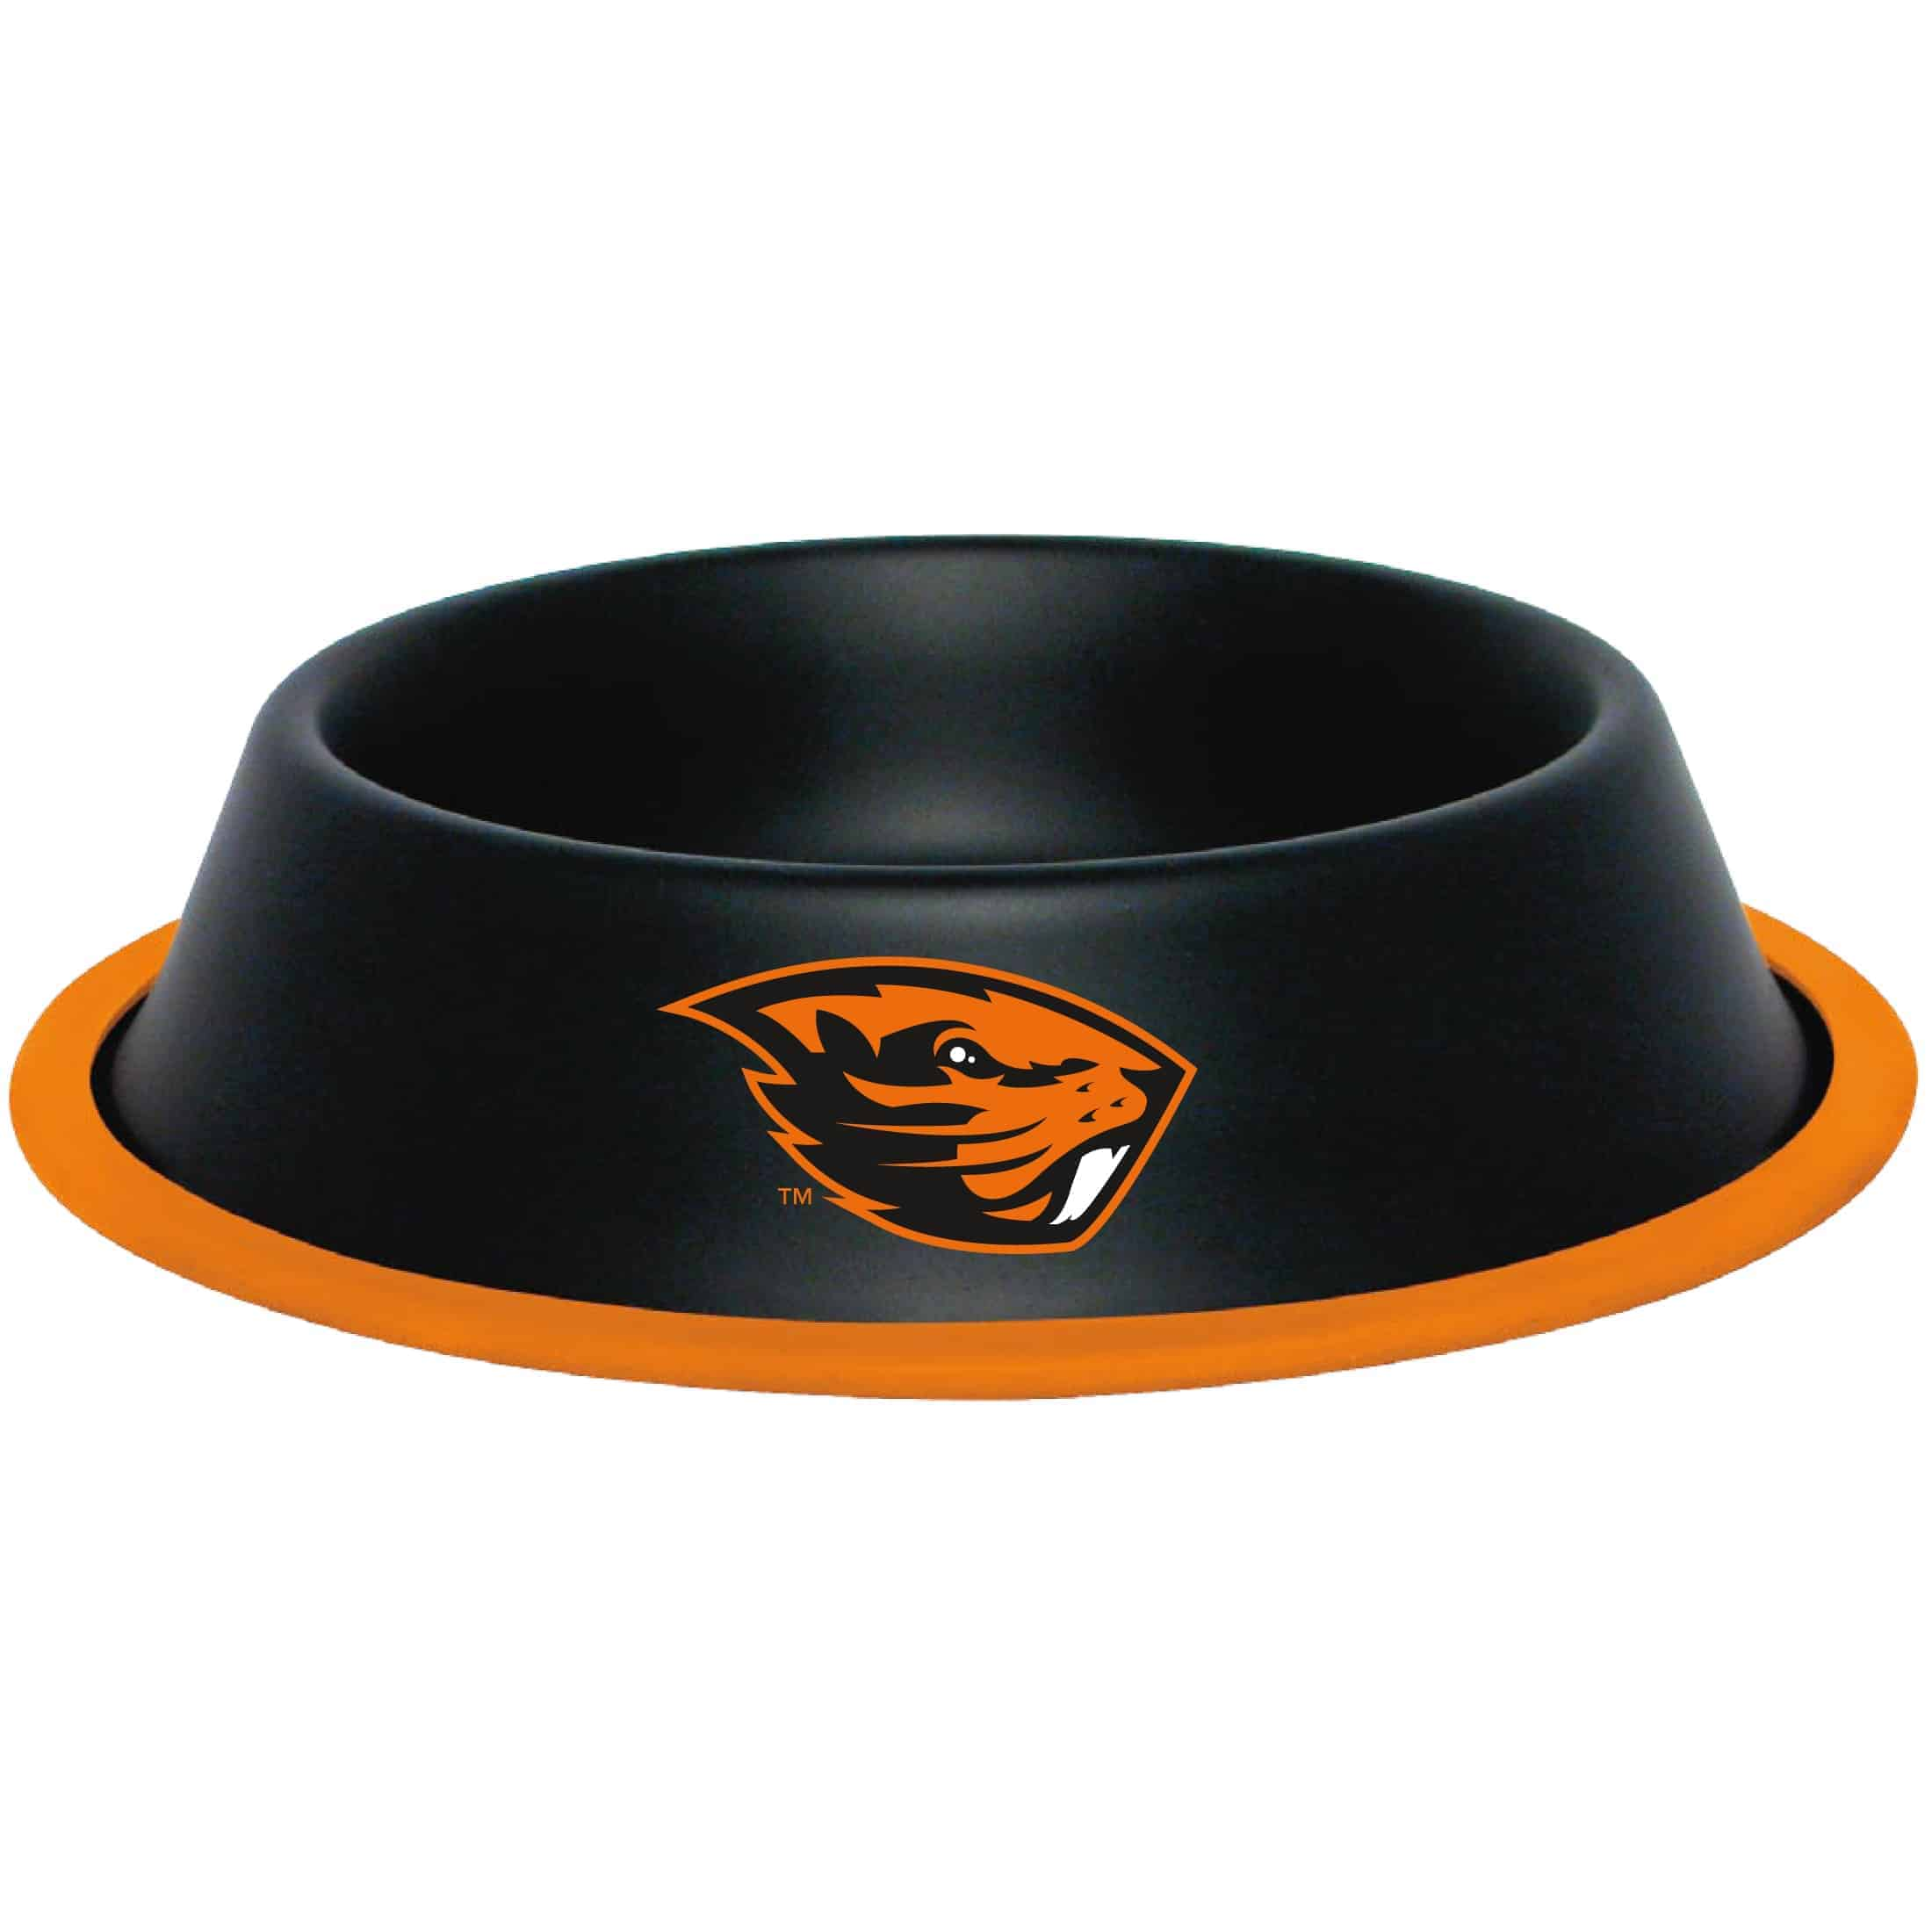 Oregon State Dog Bowl - Stainless